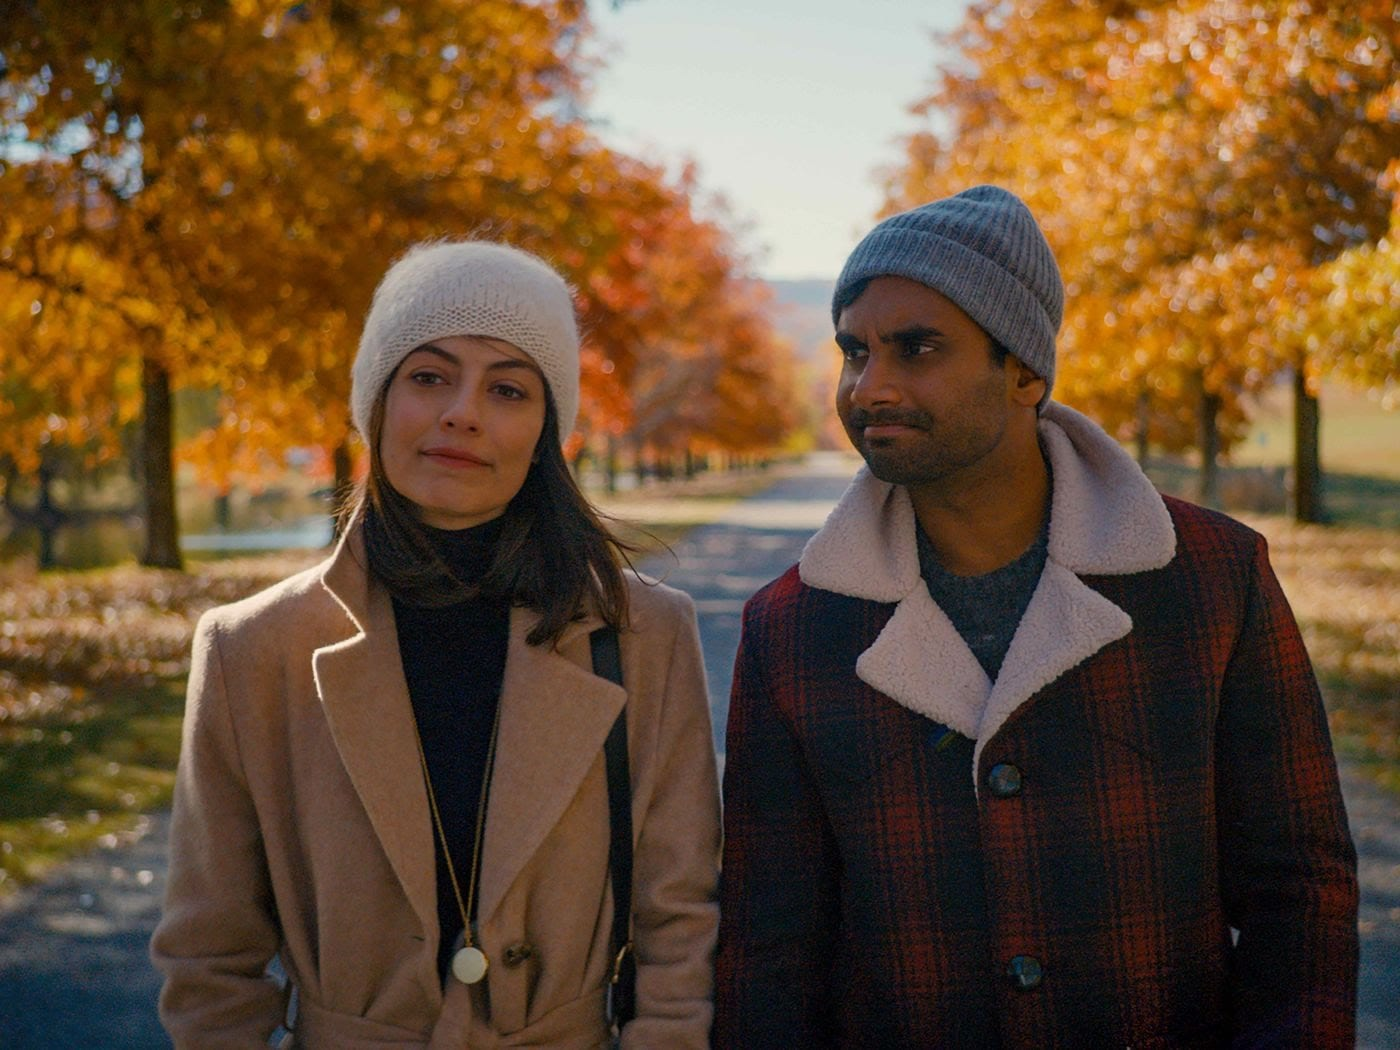 Master Of None Season 3- The Most Awaited Netflix Series Makes A Comeback After 4 Years